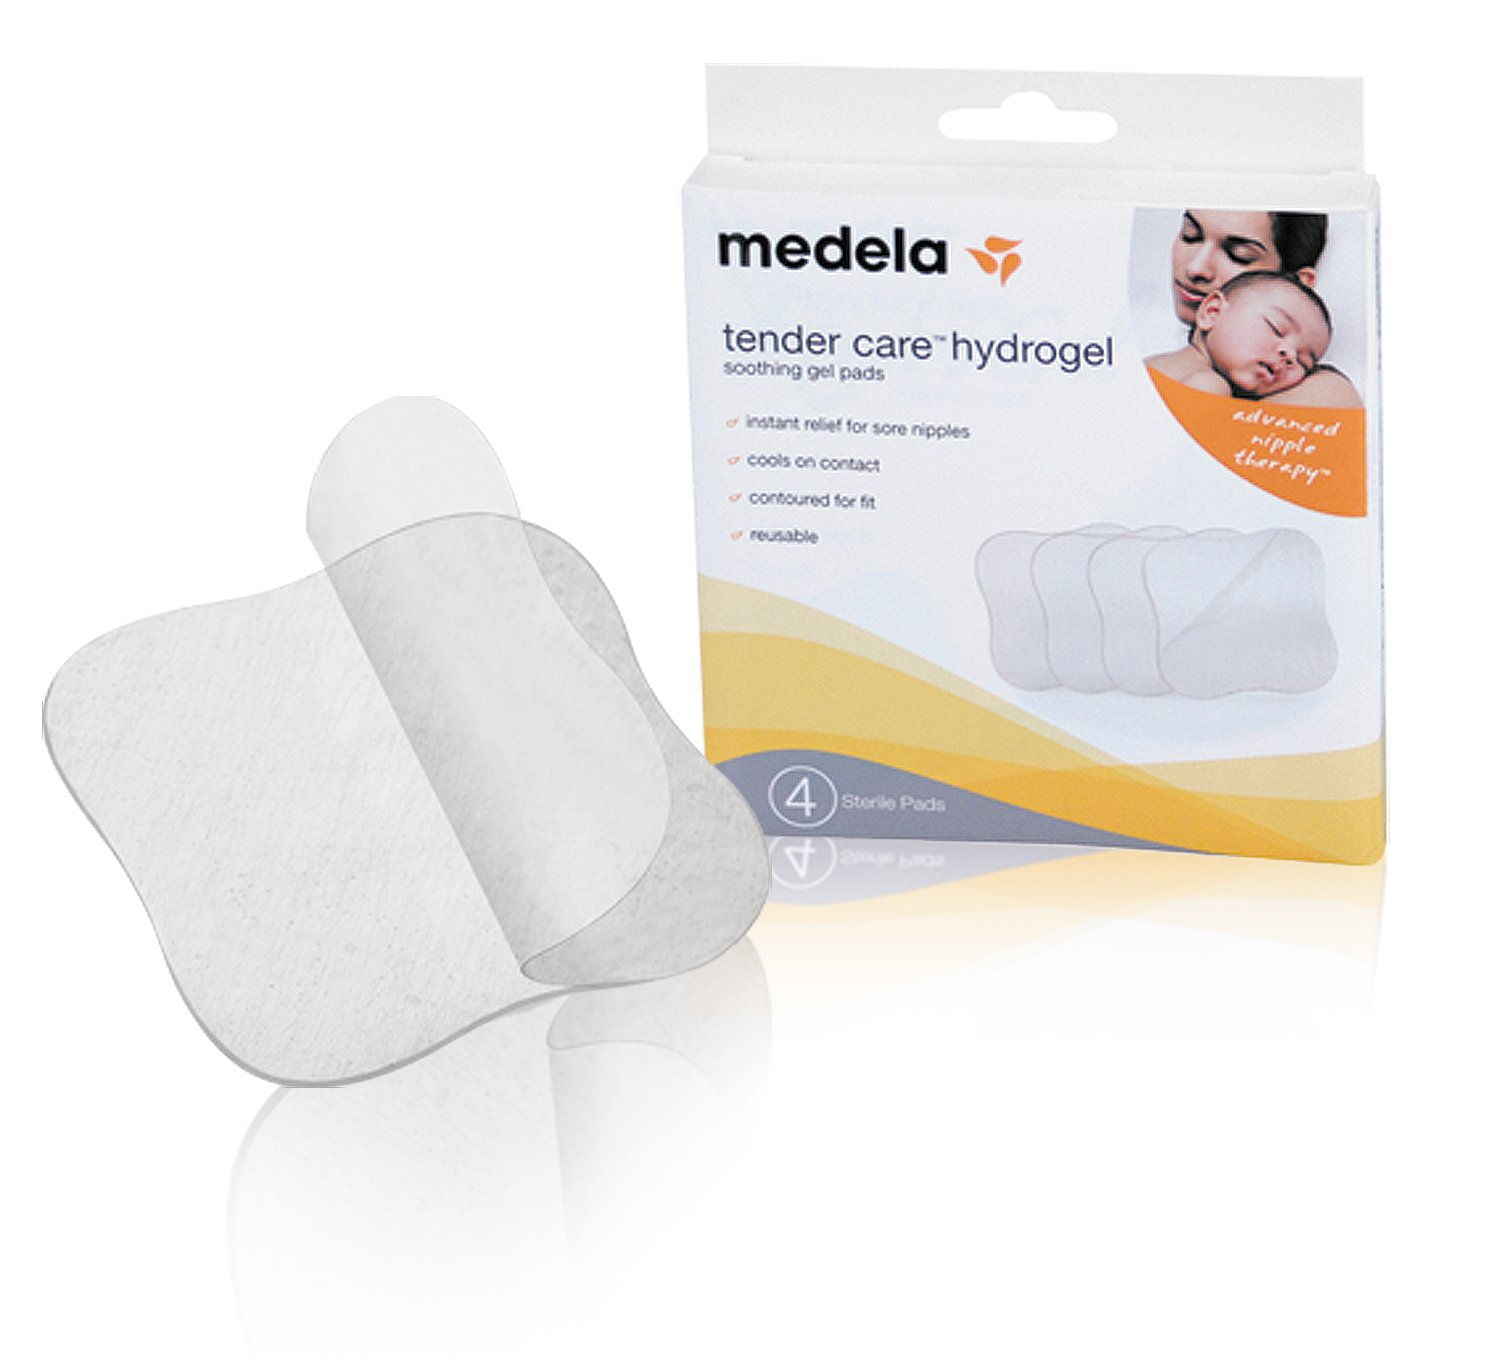 Medela Soothing Gel Pads for Breastfeeding, 4 Count Pack, Tender Care HydroGel Reusable Pads, Cooling Relief for Sore Nipp...